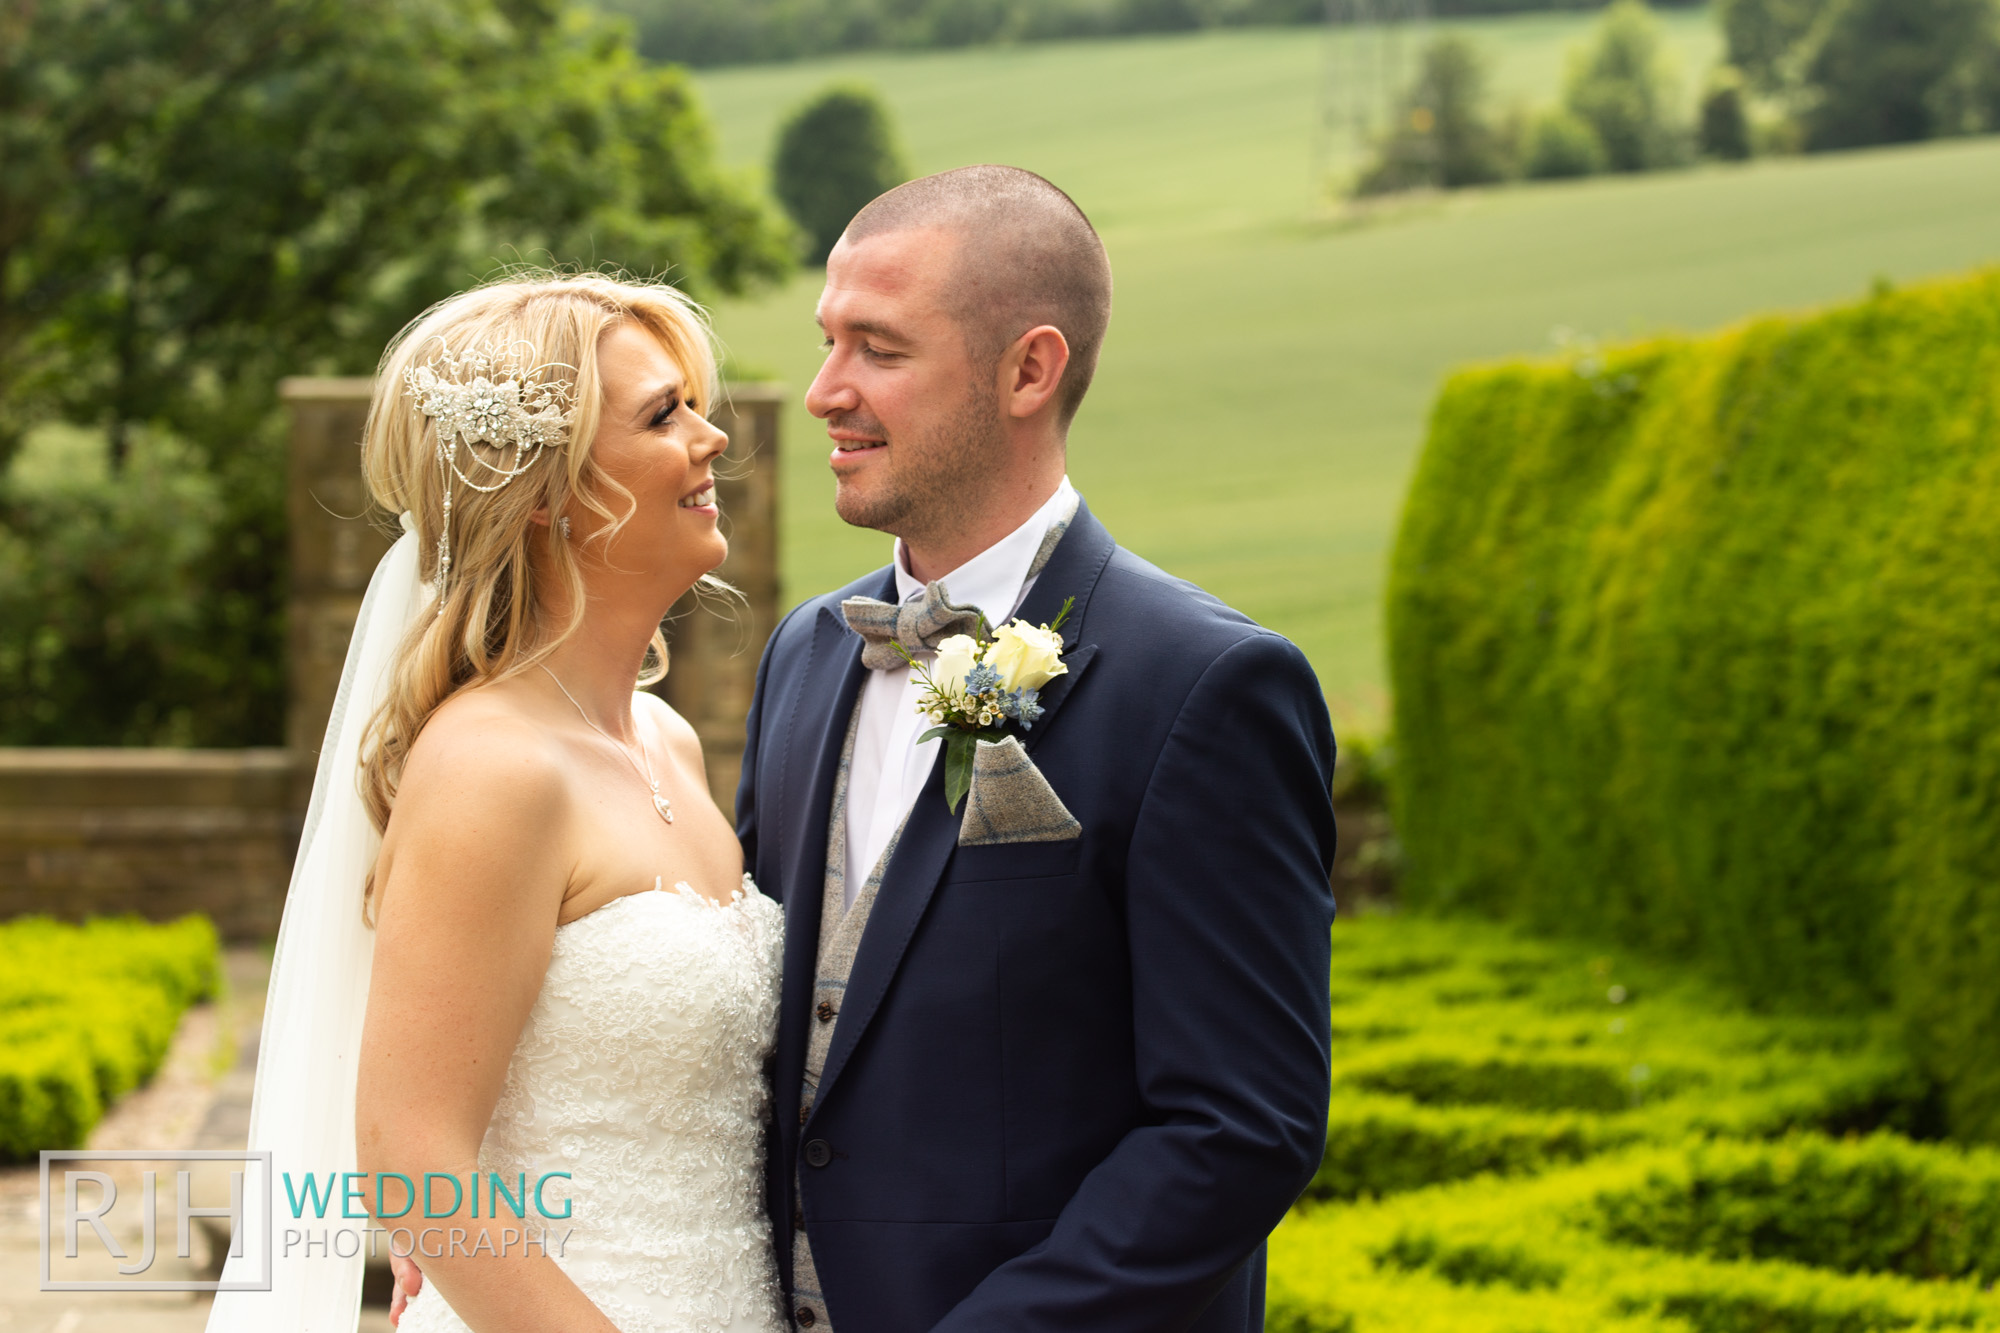 Ringwwod Hall Wedding Photography_Lacey Wedding Preview_046_IMG_6859.jpg